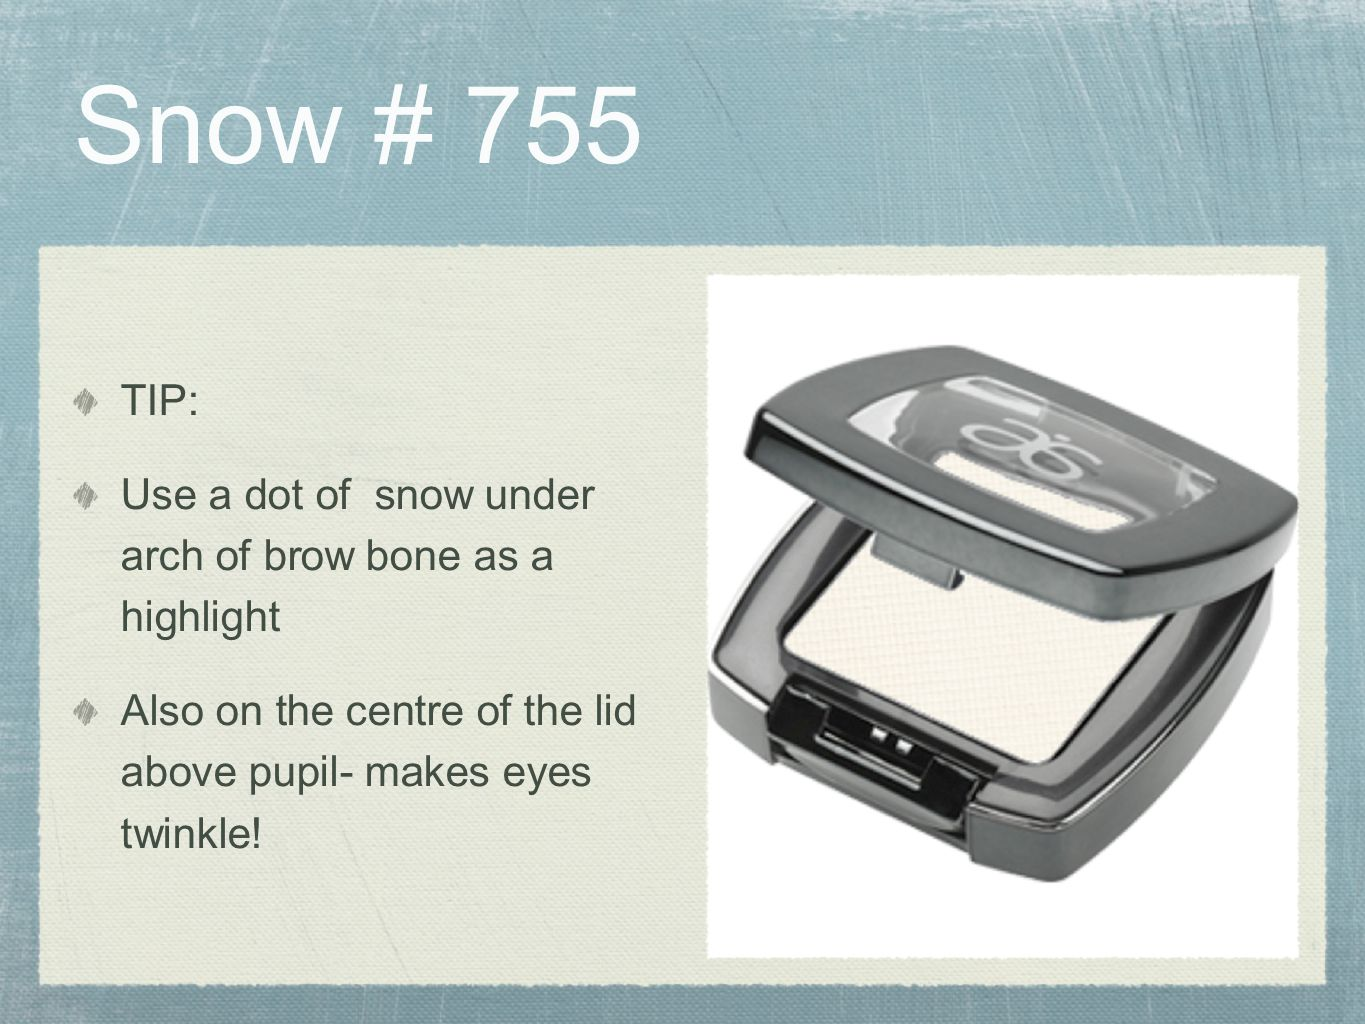 Snow # 755 TIP: Use a dot of snow under arch of brow bone as a highlight.